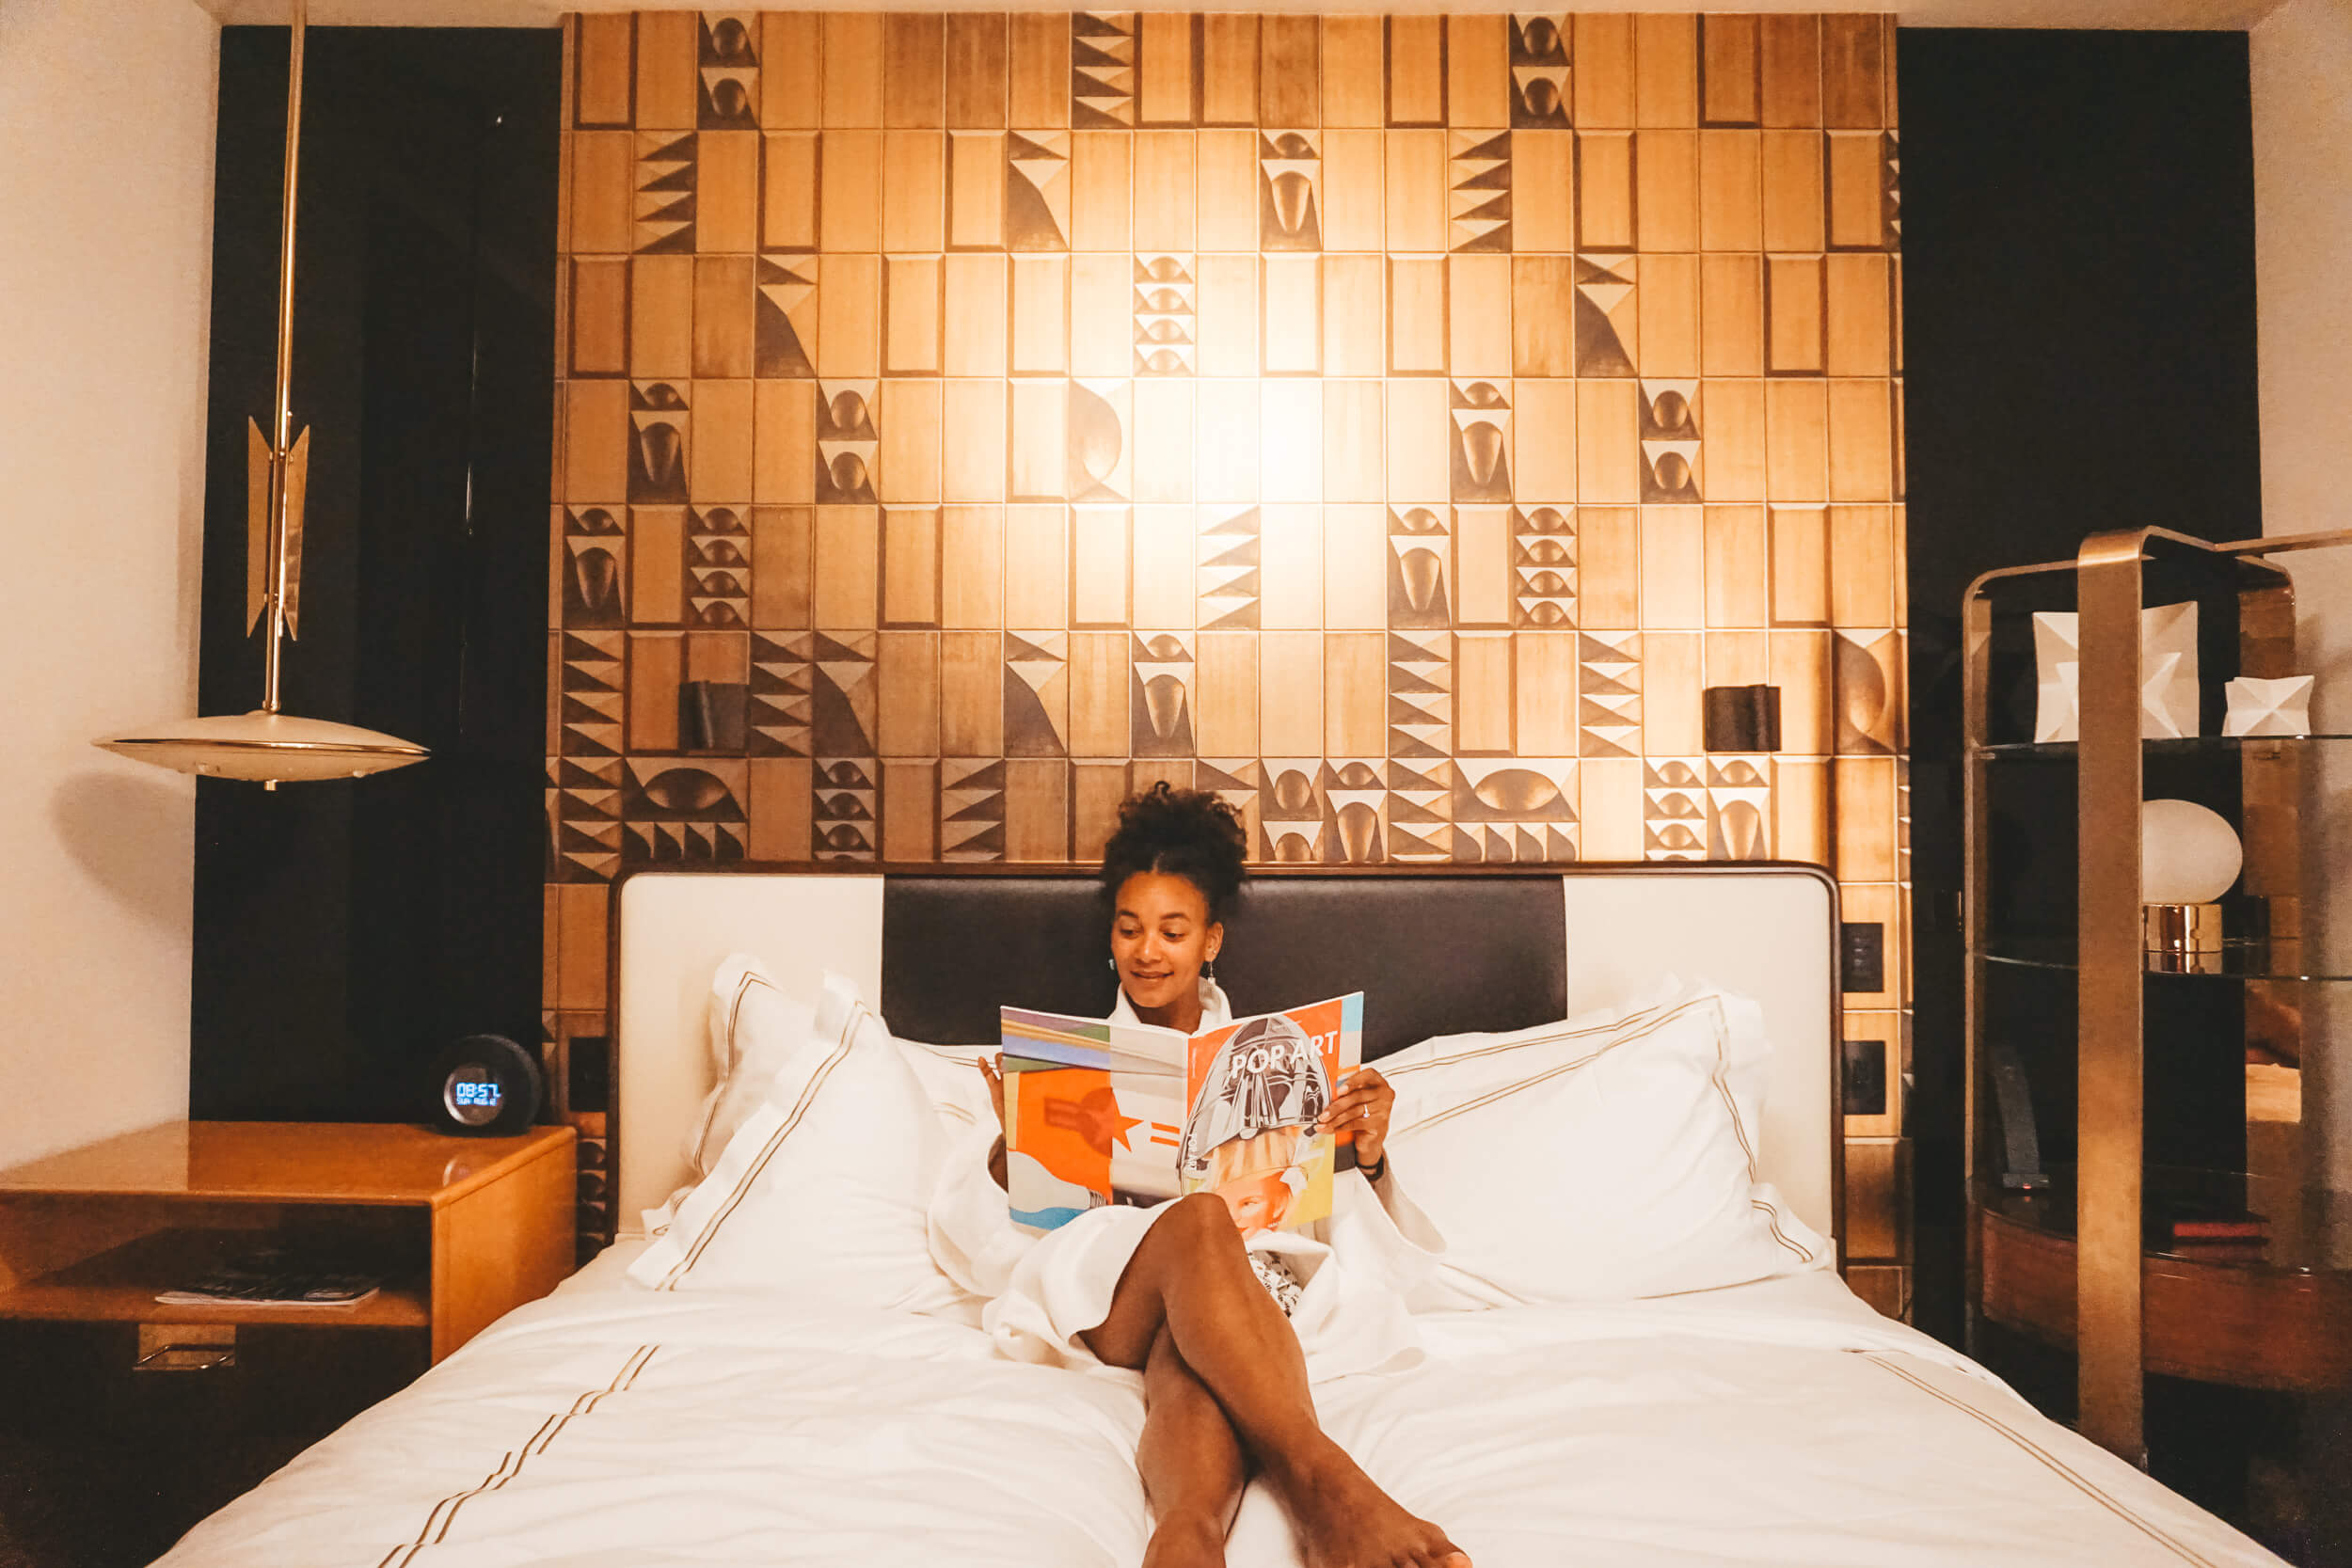 Travel and wellness blogger reading in hotel bed.